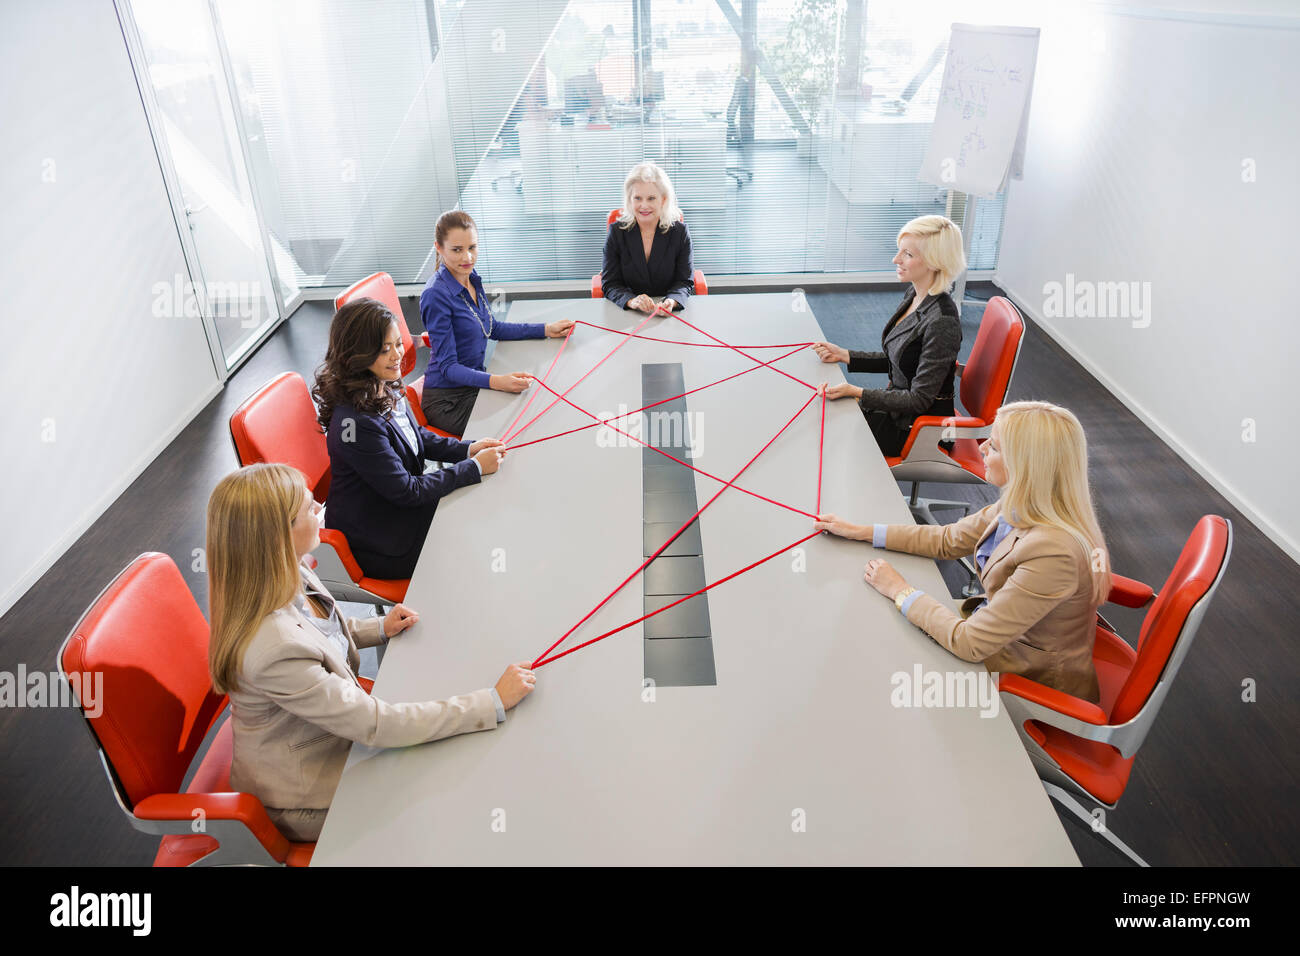 Women problem solving at conference table - Stock Image